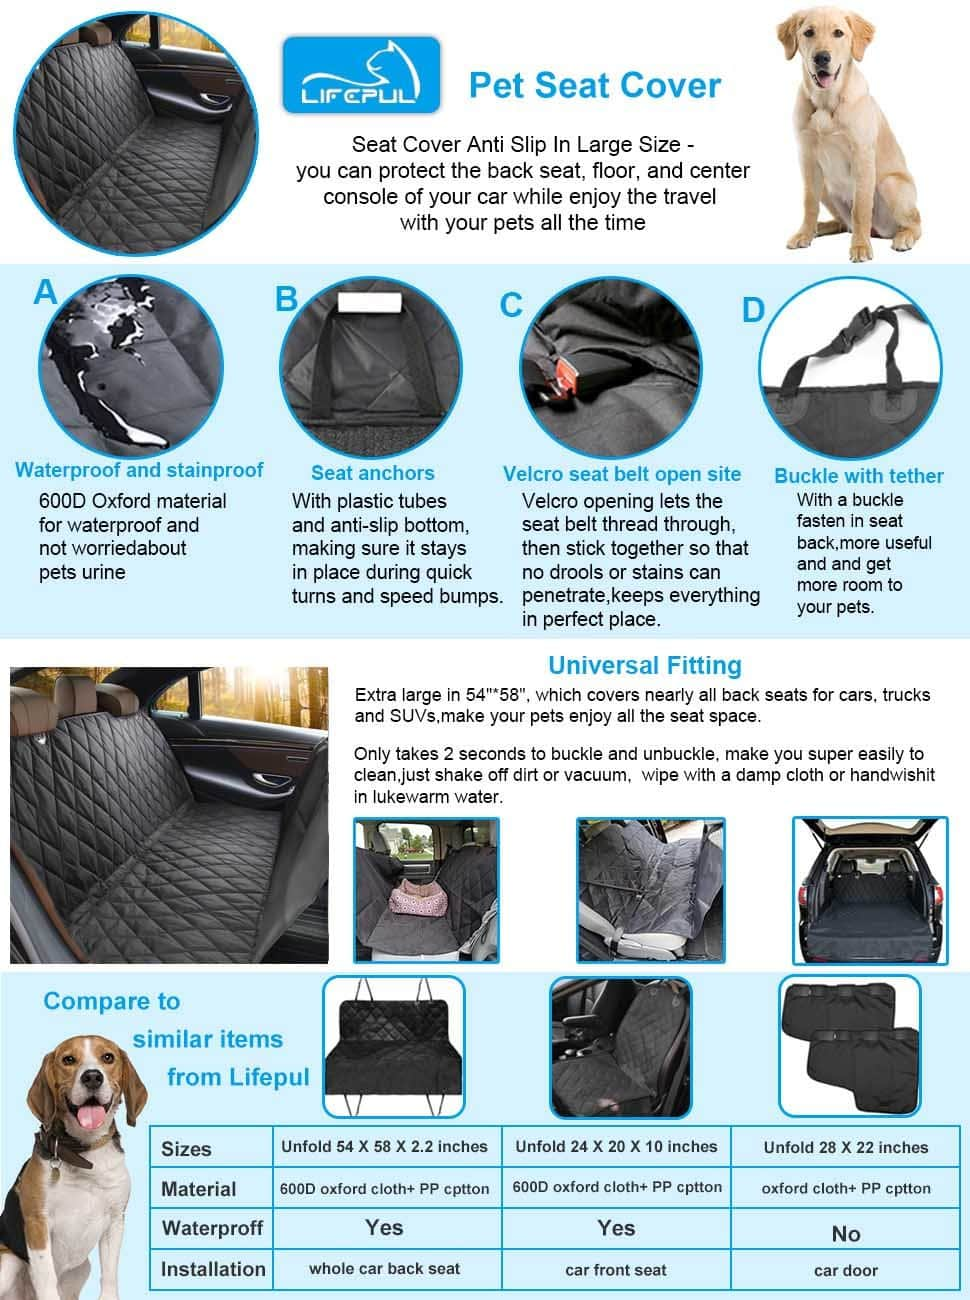 Pet Seat Cover for Cars w/ Anti Slip In Large Size - $16.78 AC FS